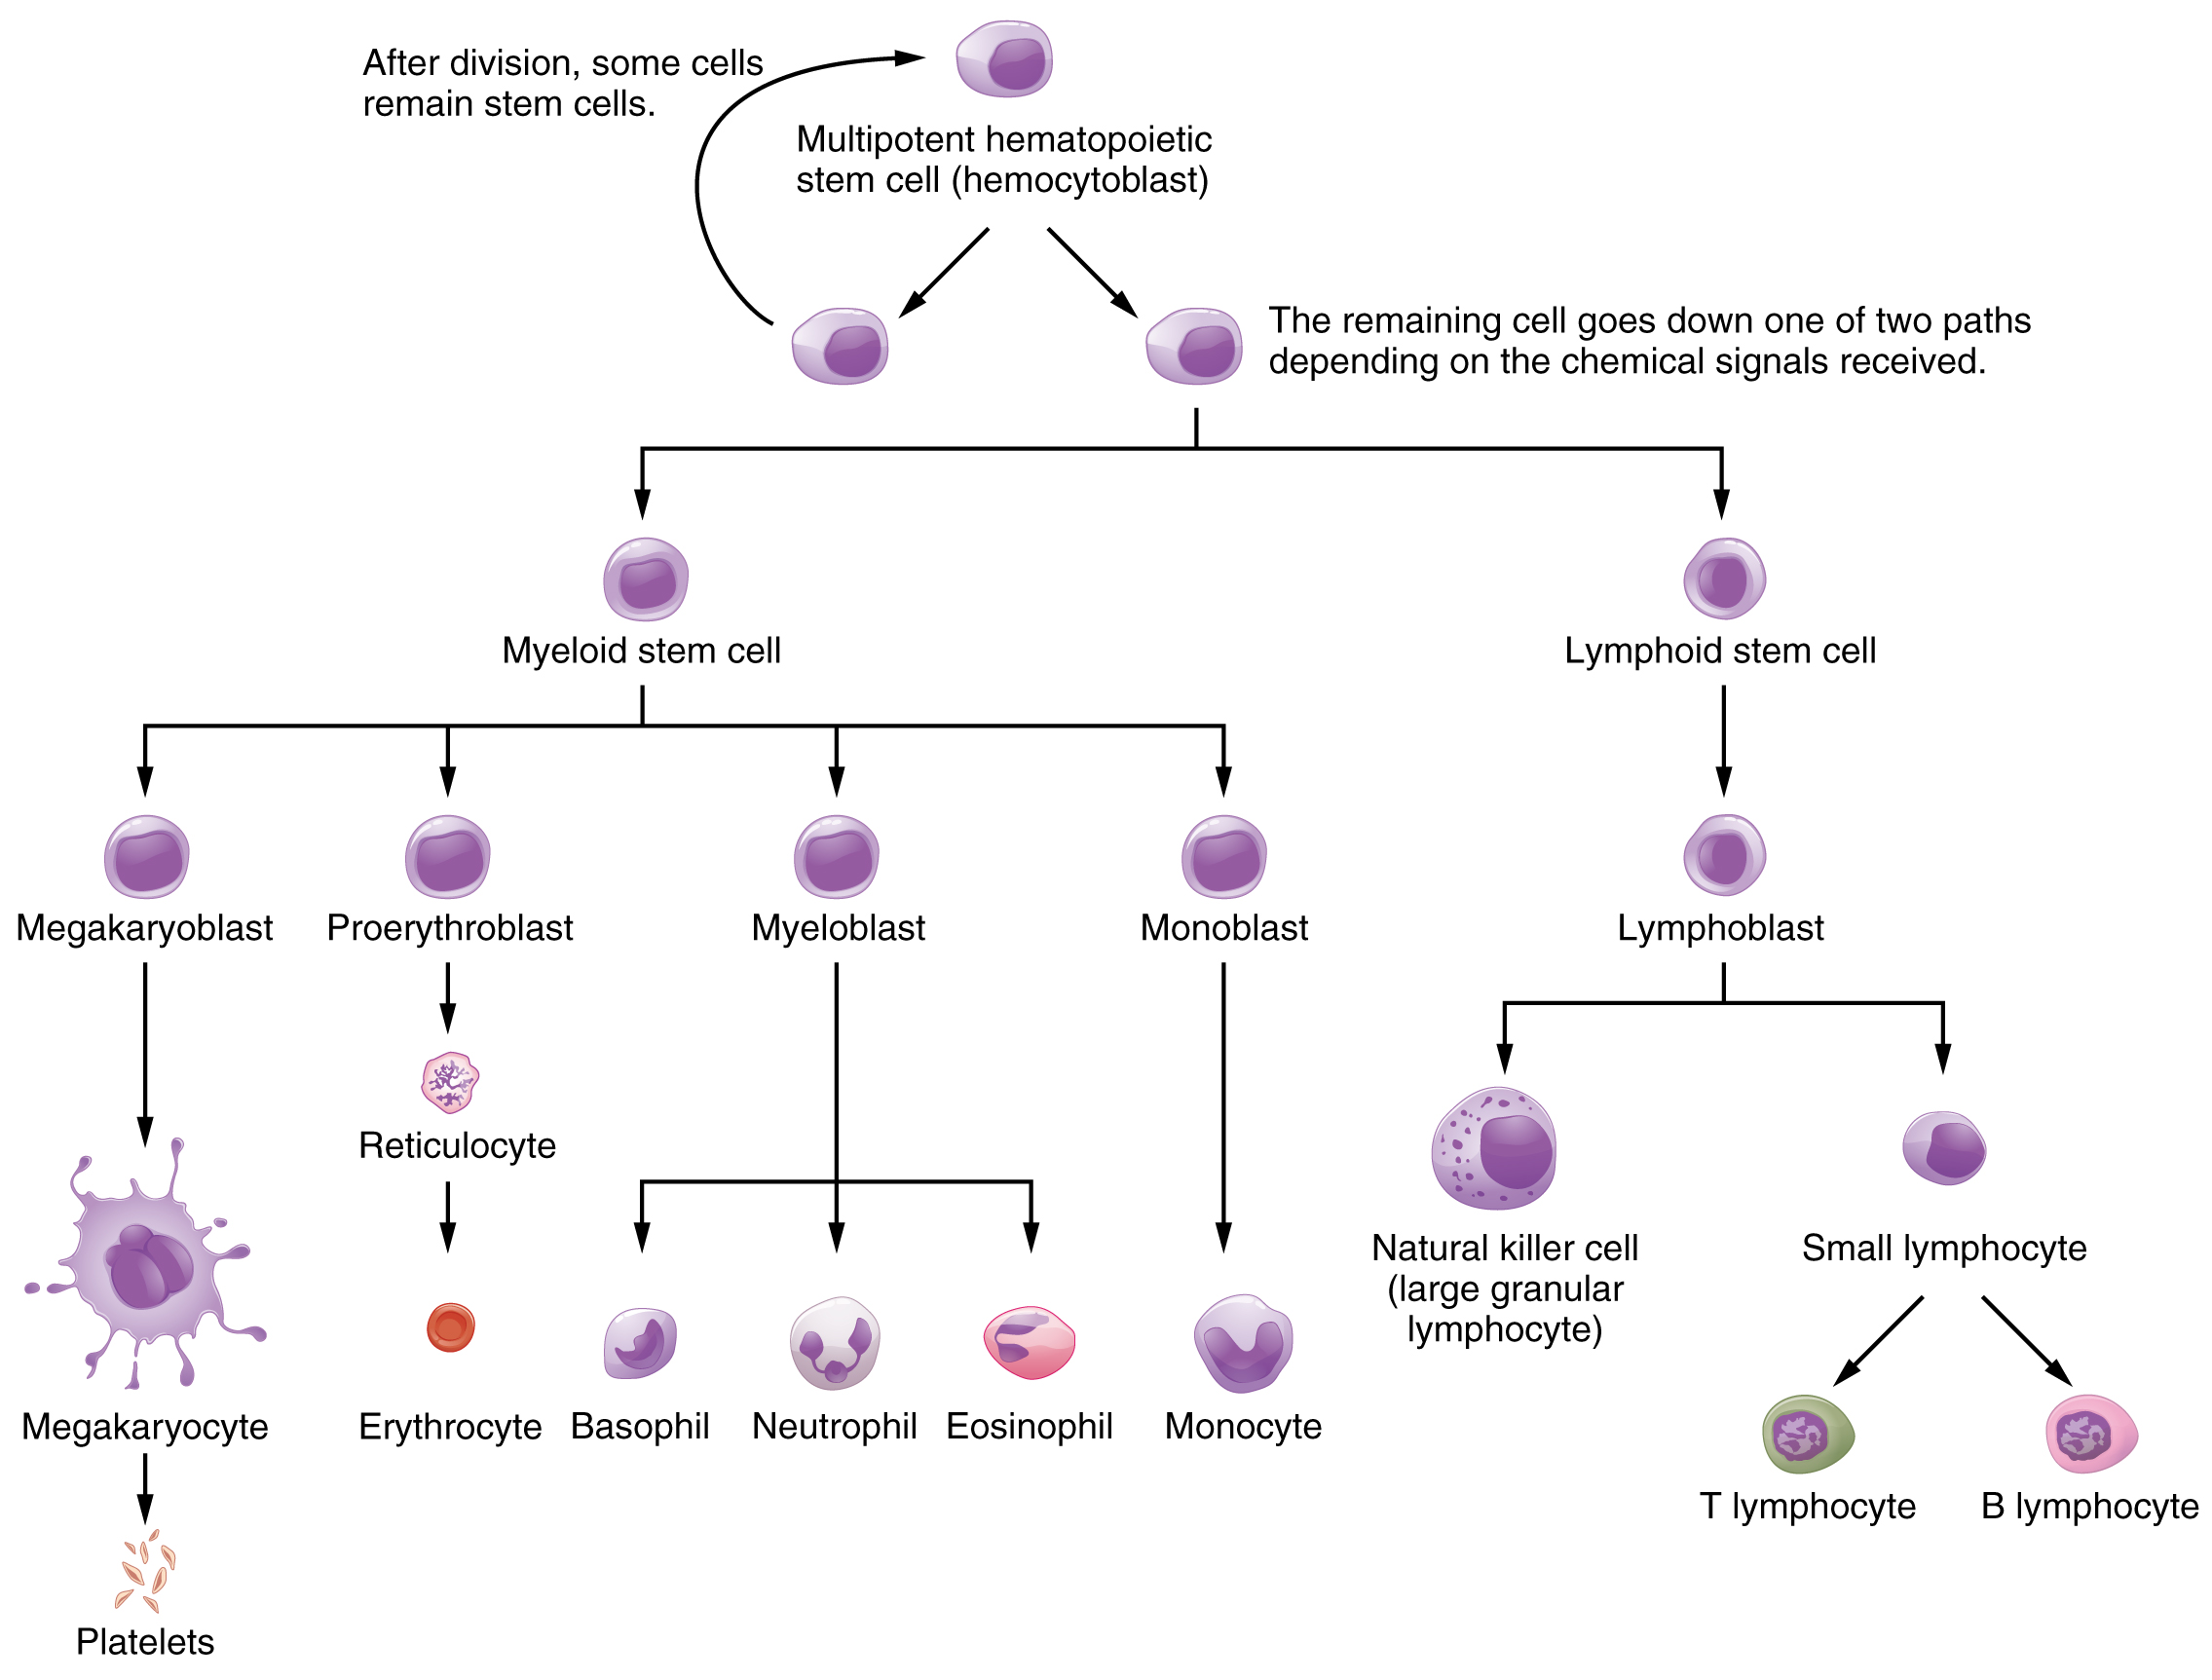 Cell Cycle Flow Chart: 1902 Hemopoiesis.jpg - Wikimedia Commons,Chart